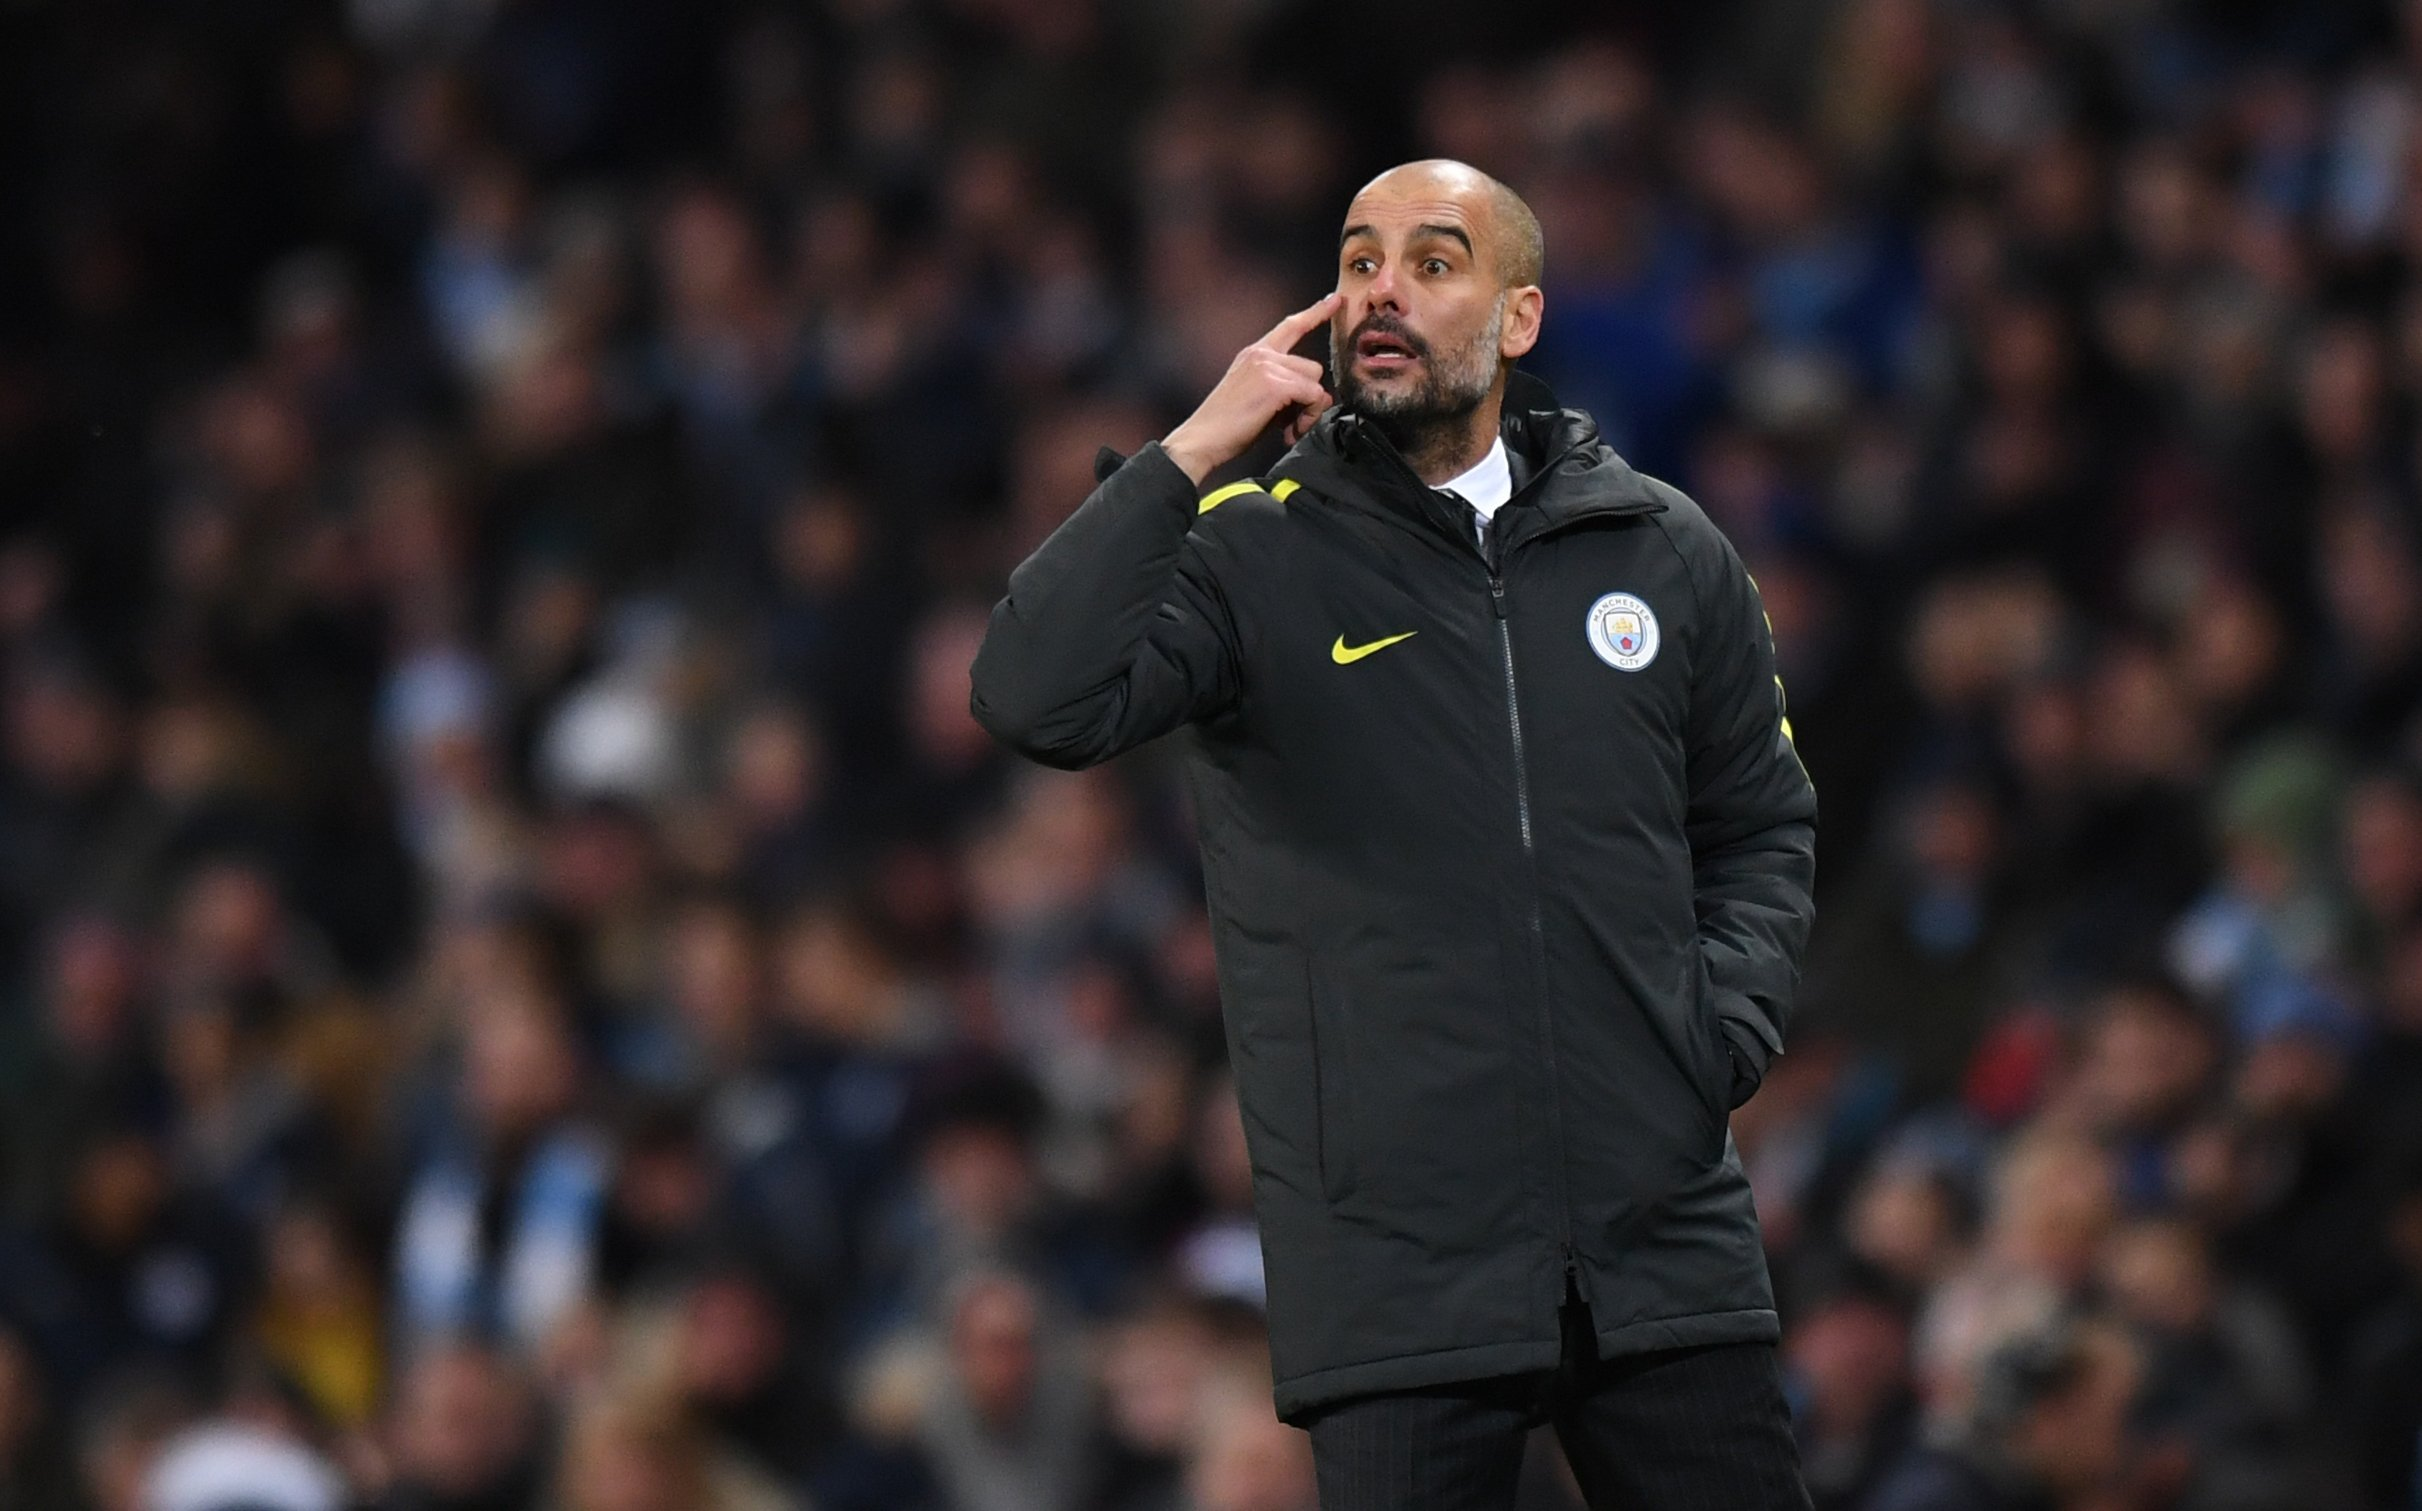 https://www.tf1.fr/tf1/telefoot/news/premier-league-city-s-envole-united-chelsea-3039049.html 2018-02-01 https://photos1.tf1.fr/0/0/pep-guardiola-manchester-city-1-cd991c-2@1x.jpeg RTX2X9IU Pep Guardiola (Manchester City) TF1 fr 2018-02-01 Premier League